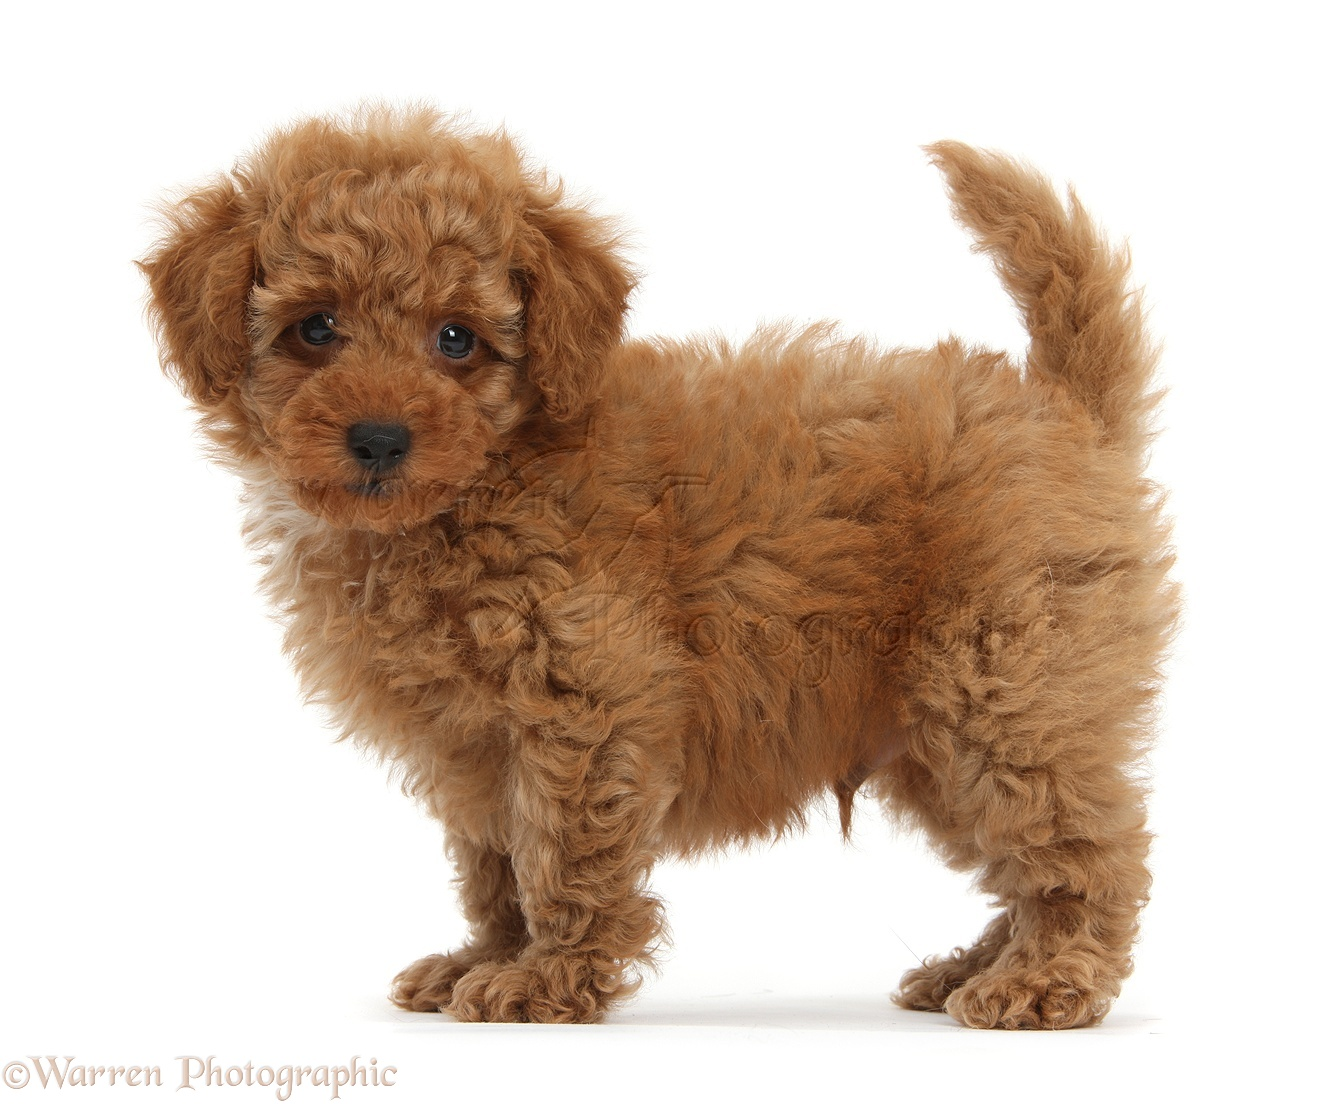 Dog: Cute red Toy Poodle puppy standing photo - WP38699